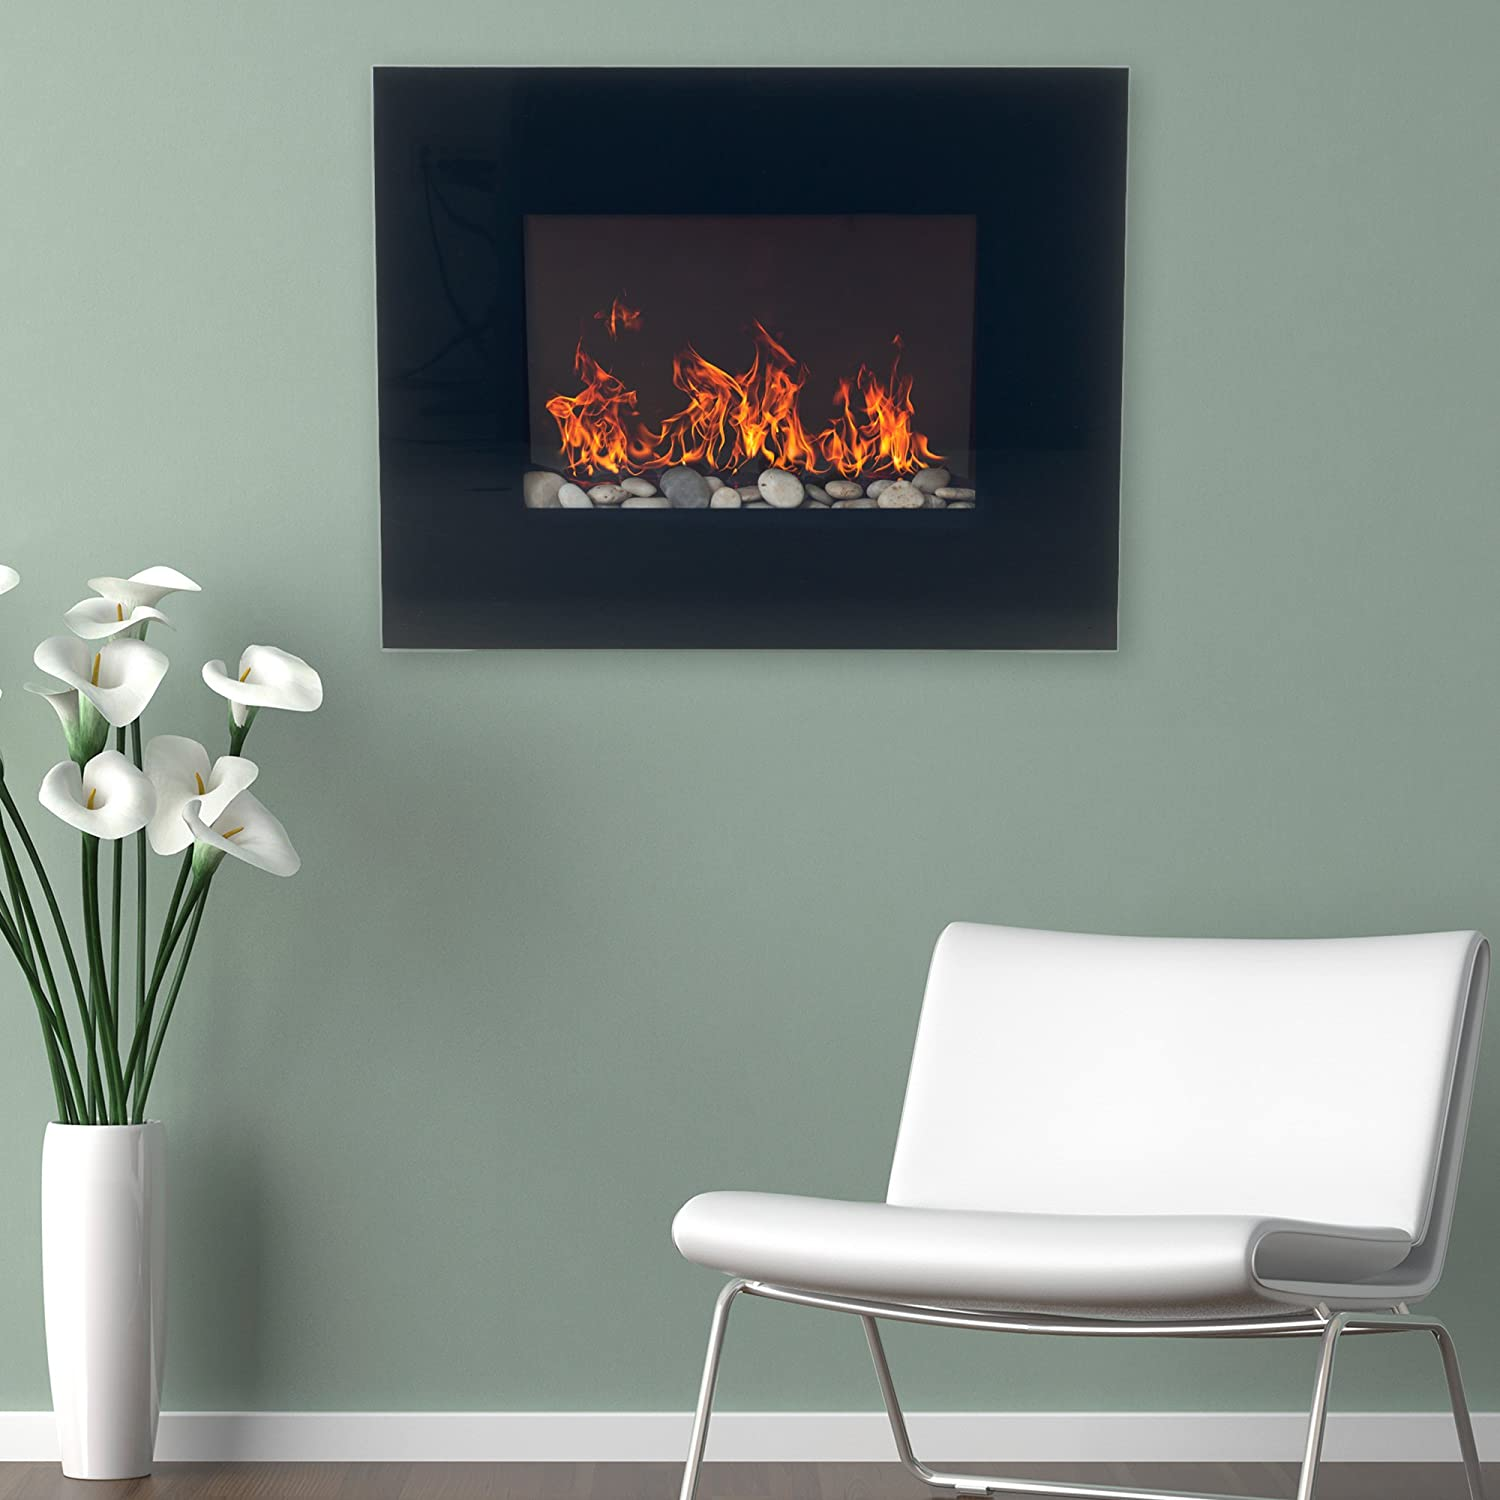 Midnight 32  Northwest 25  Mini Curved Black Fireplace with Wall and Floor Mount Midnight